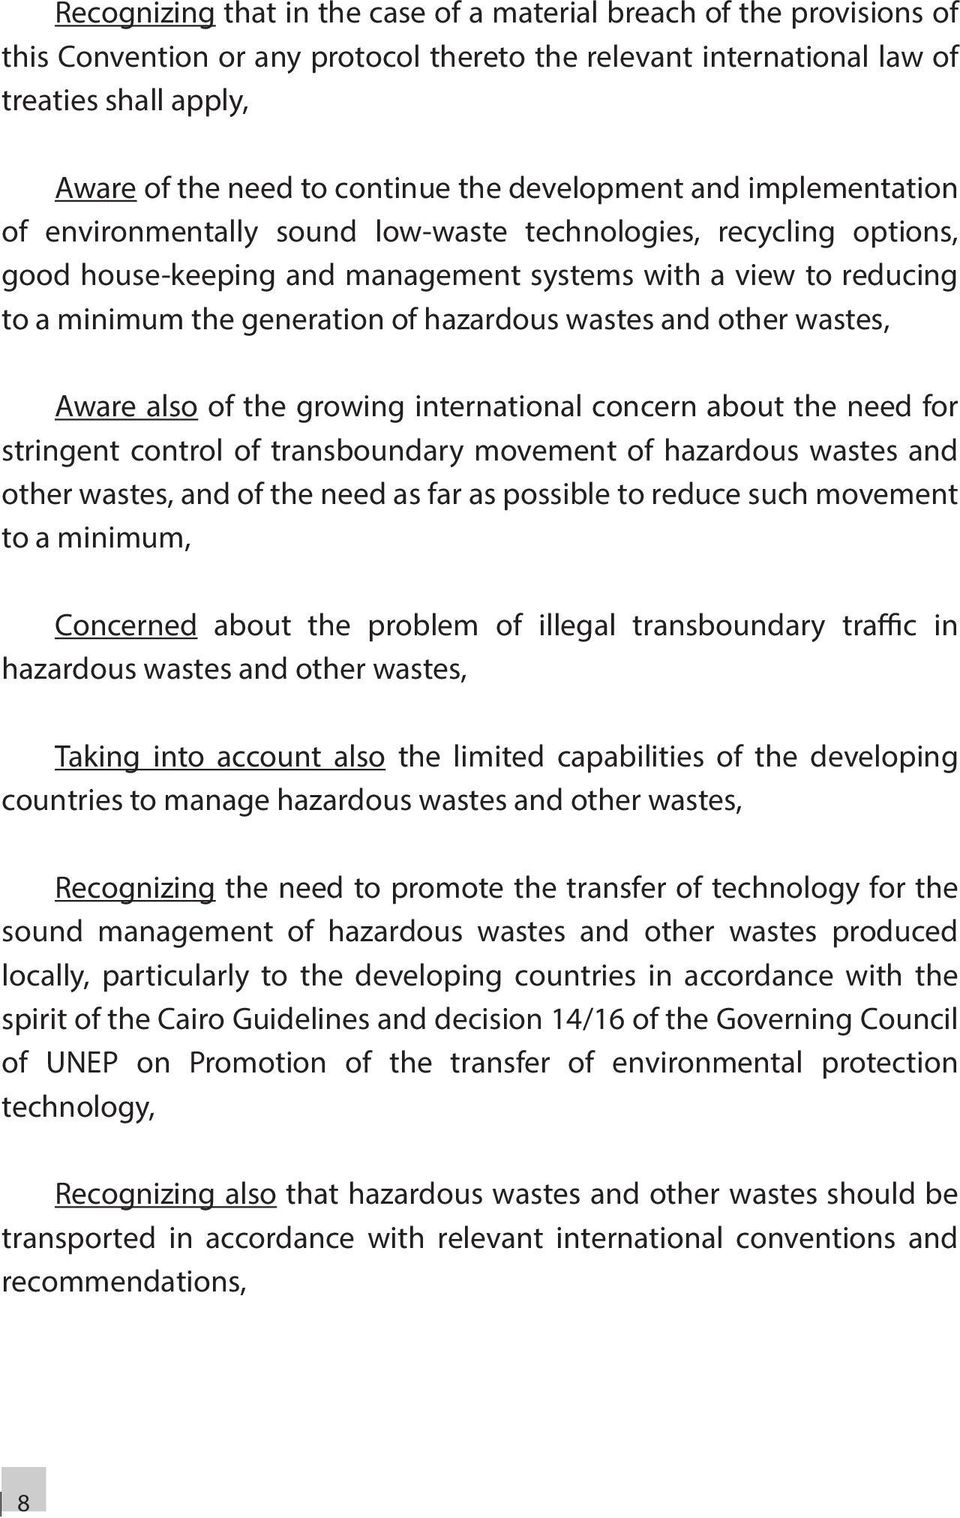 hazardous wastes and other wastes, Aware also of the growing international concern about the need for stringent control of transboundary movement of hazardous wastes and other wastes, and of the need